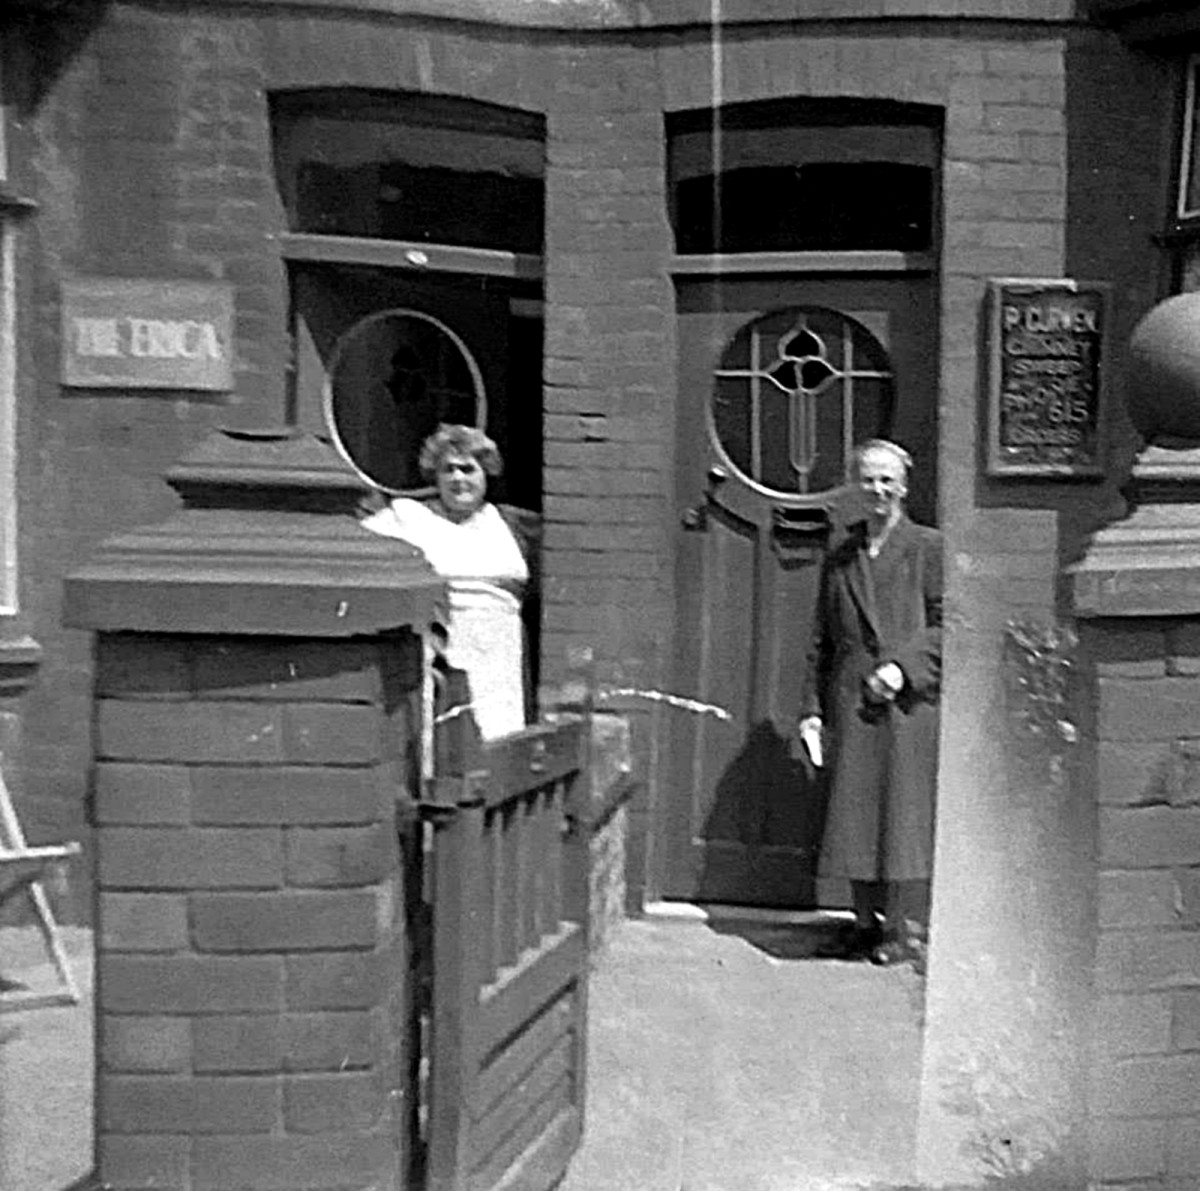 Grandma (pictured on the left) having a chat with her next-door neighbour, Mrs Curwen, in the early 1960s. Her husband, Mr Percy Curwen, was a chimney sweep and they lived at 50 Queen Victoria Road.